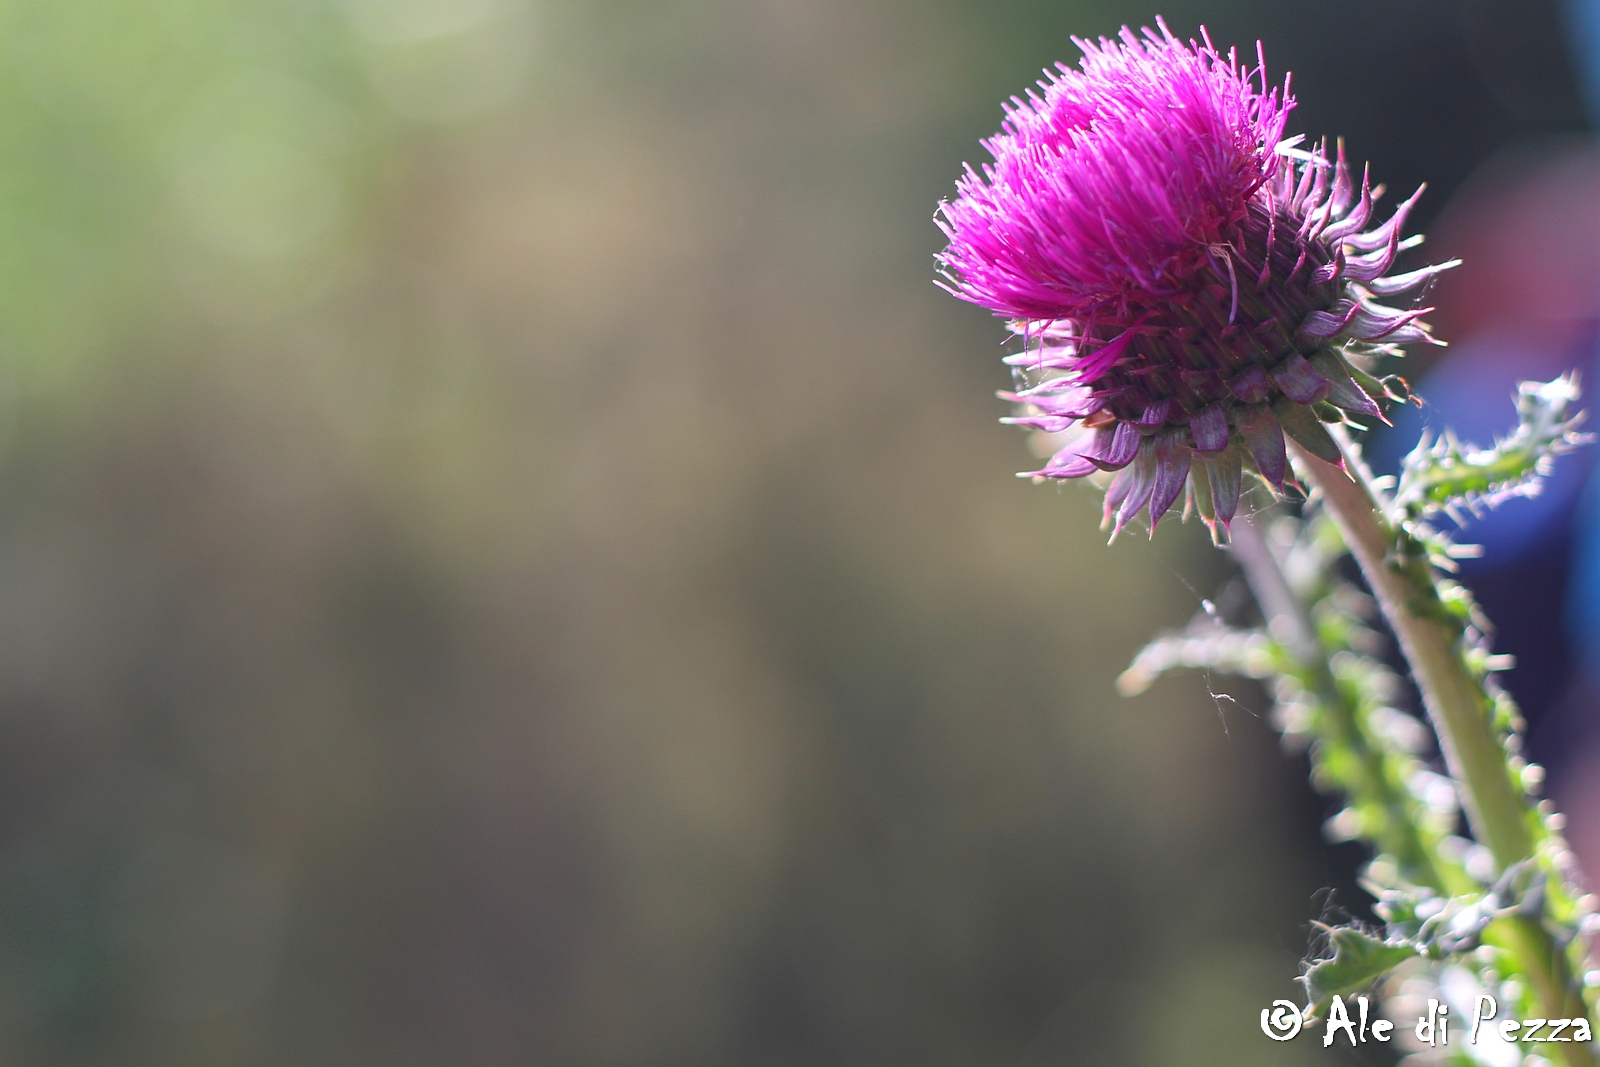 IMG_0150_res